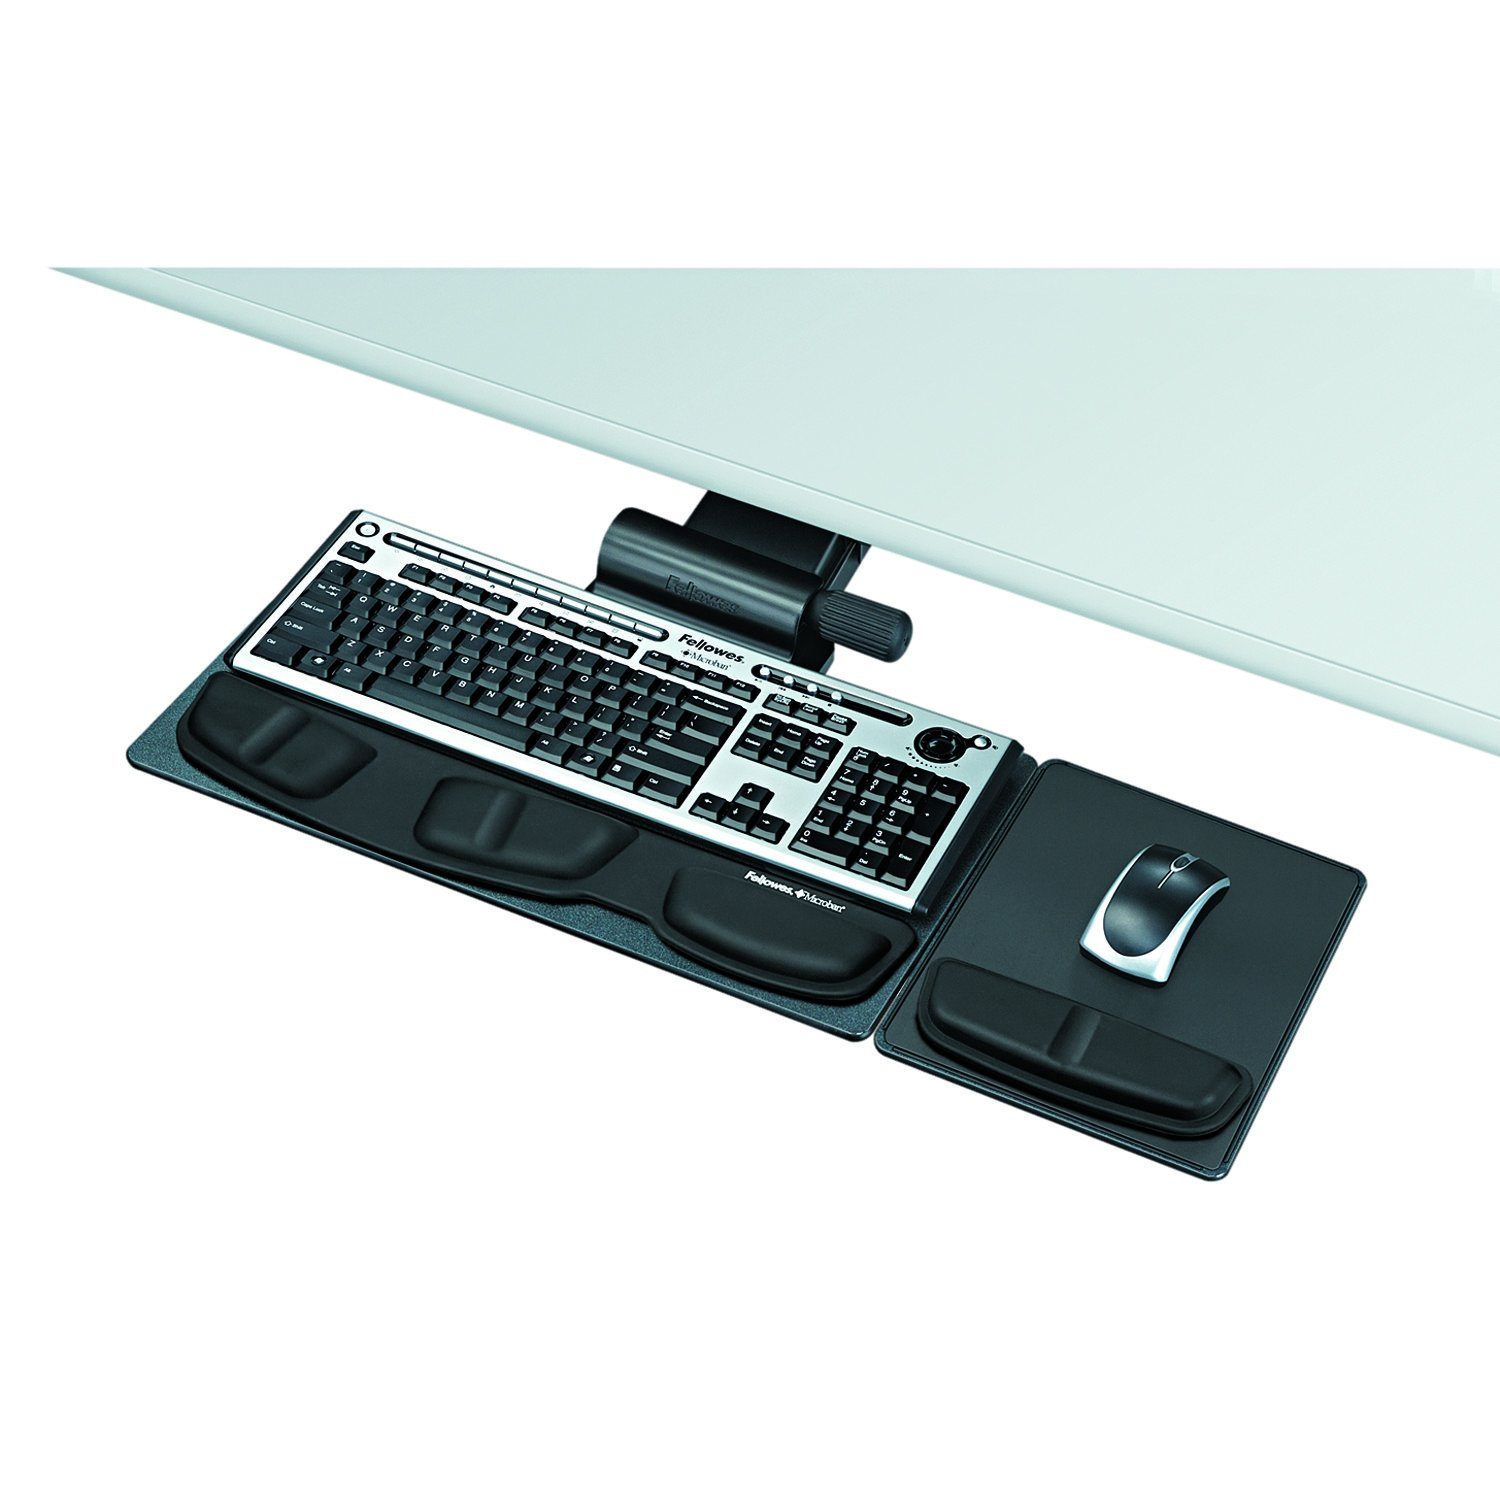 Fellowes 8036001 Professional Premier Series Adjustable Keyboard Tray, 19w x 10-5/8d, Black